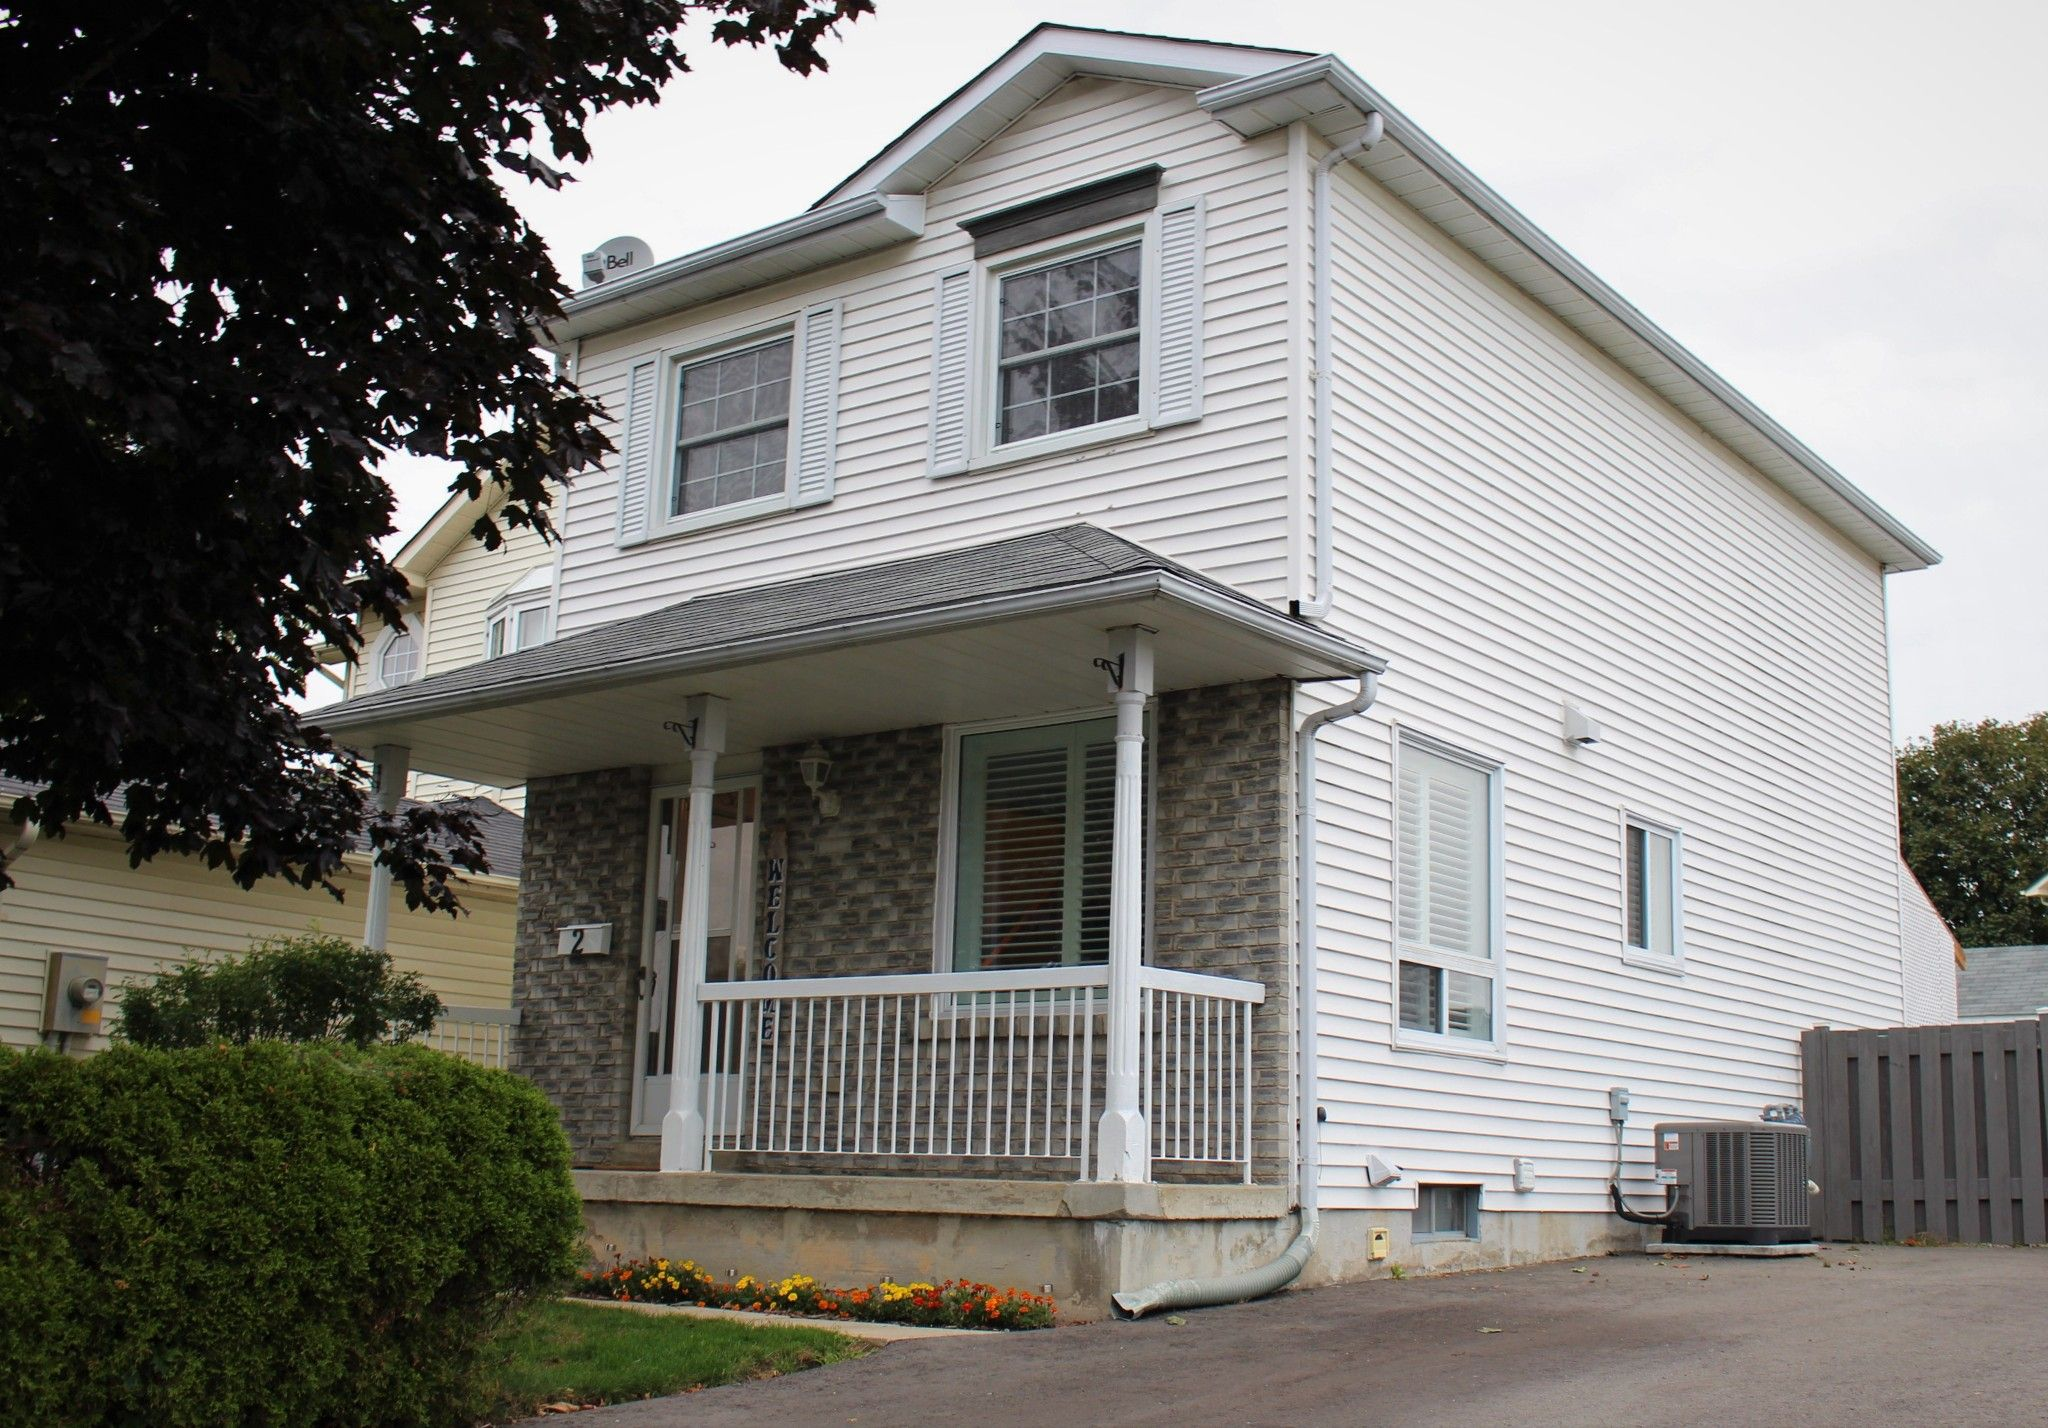 Main Photo: 2 Curtis Court in Port Hope: House for sale : MLS®# 40019068